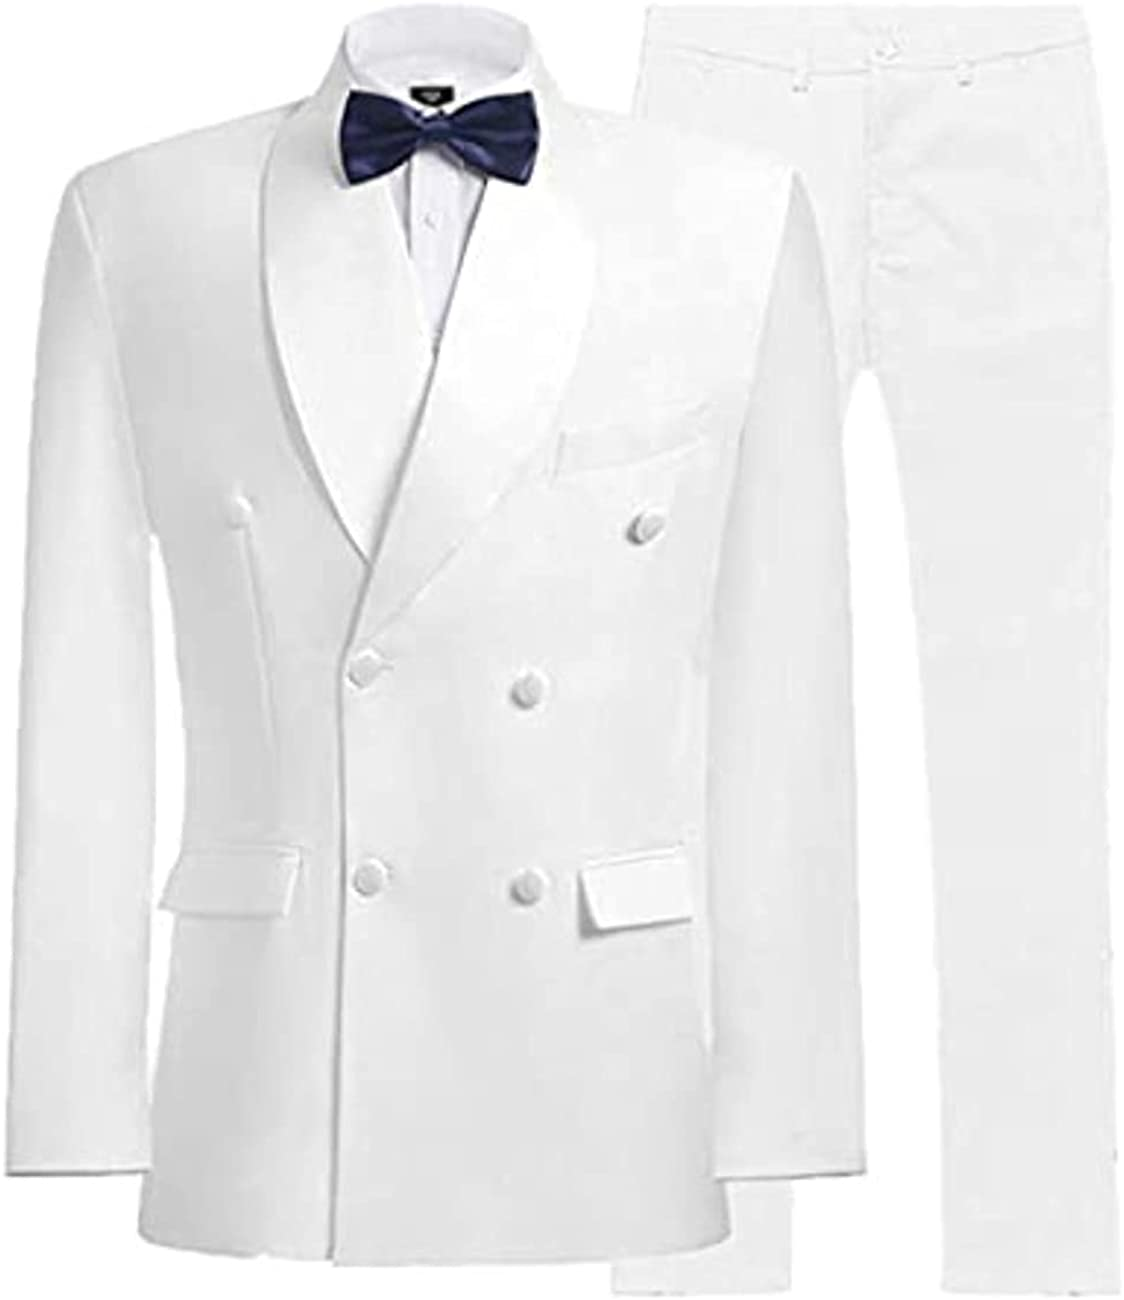 werp 2Pc Men's Solid Slim Fit Double Breasted Suit Shawl Lapel Wedding Suits Tuxedo Jacket